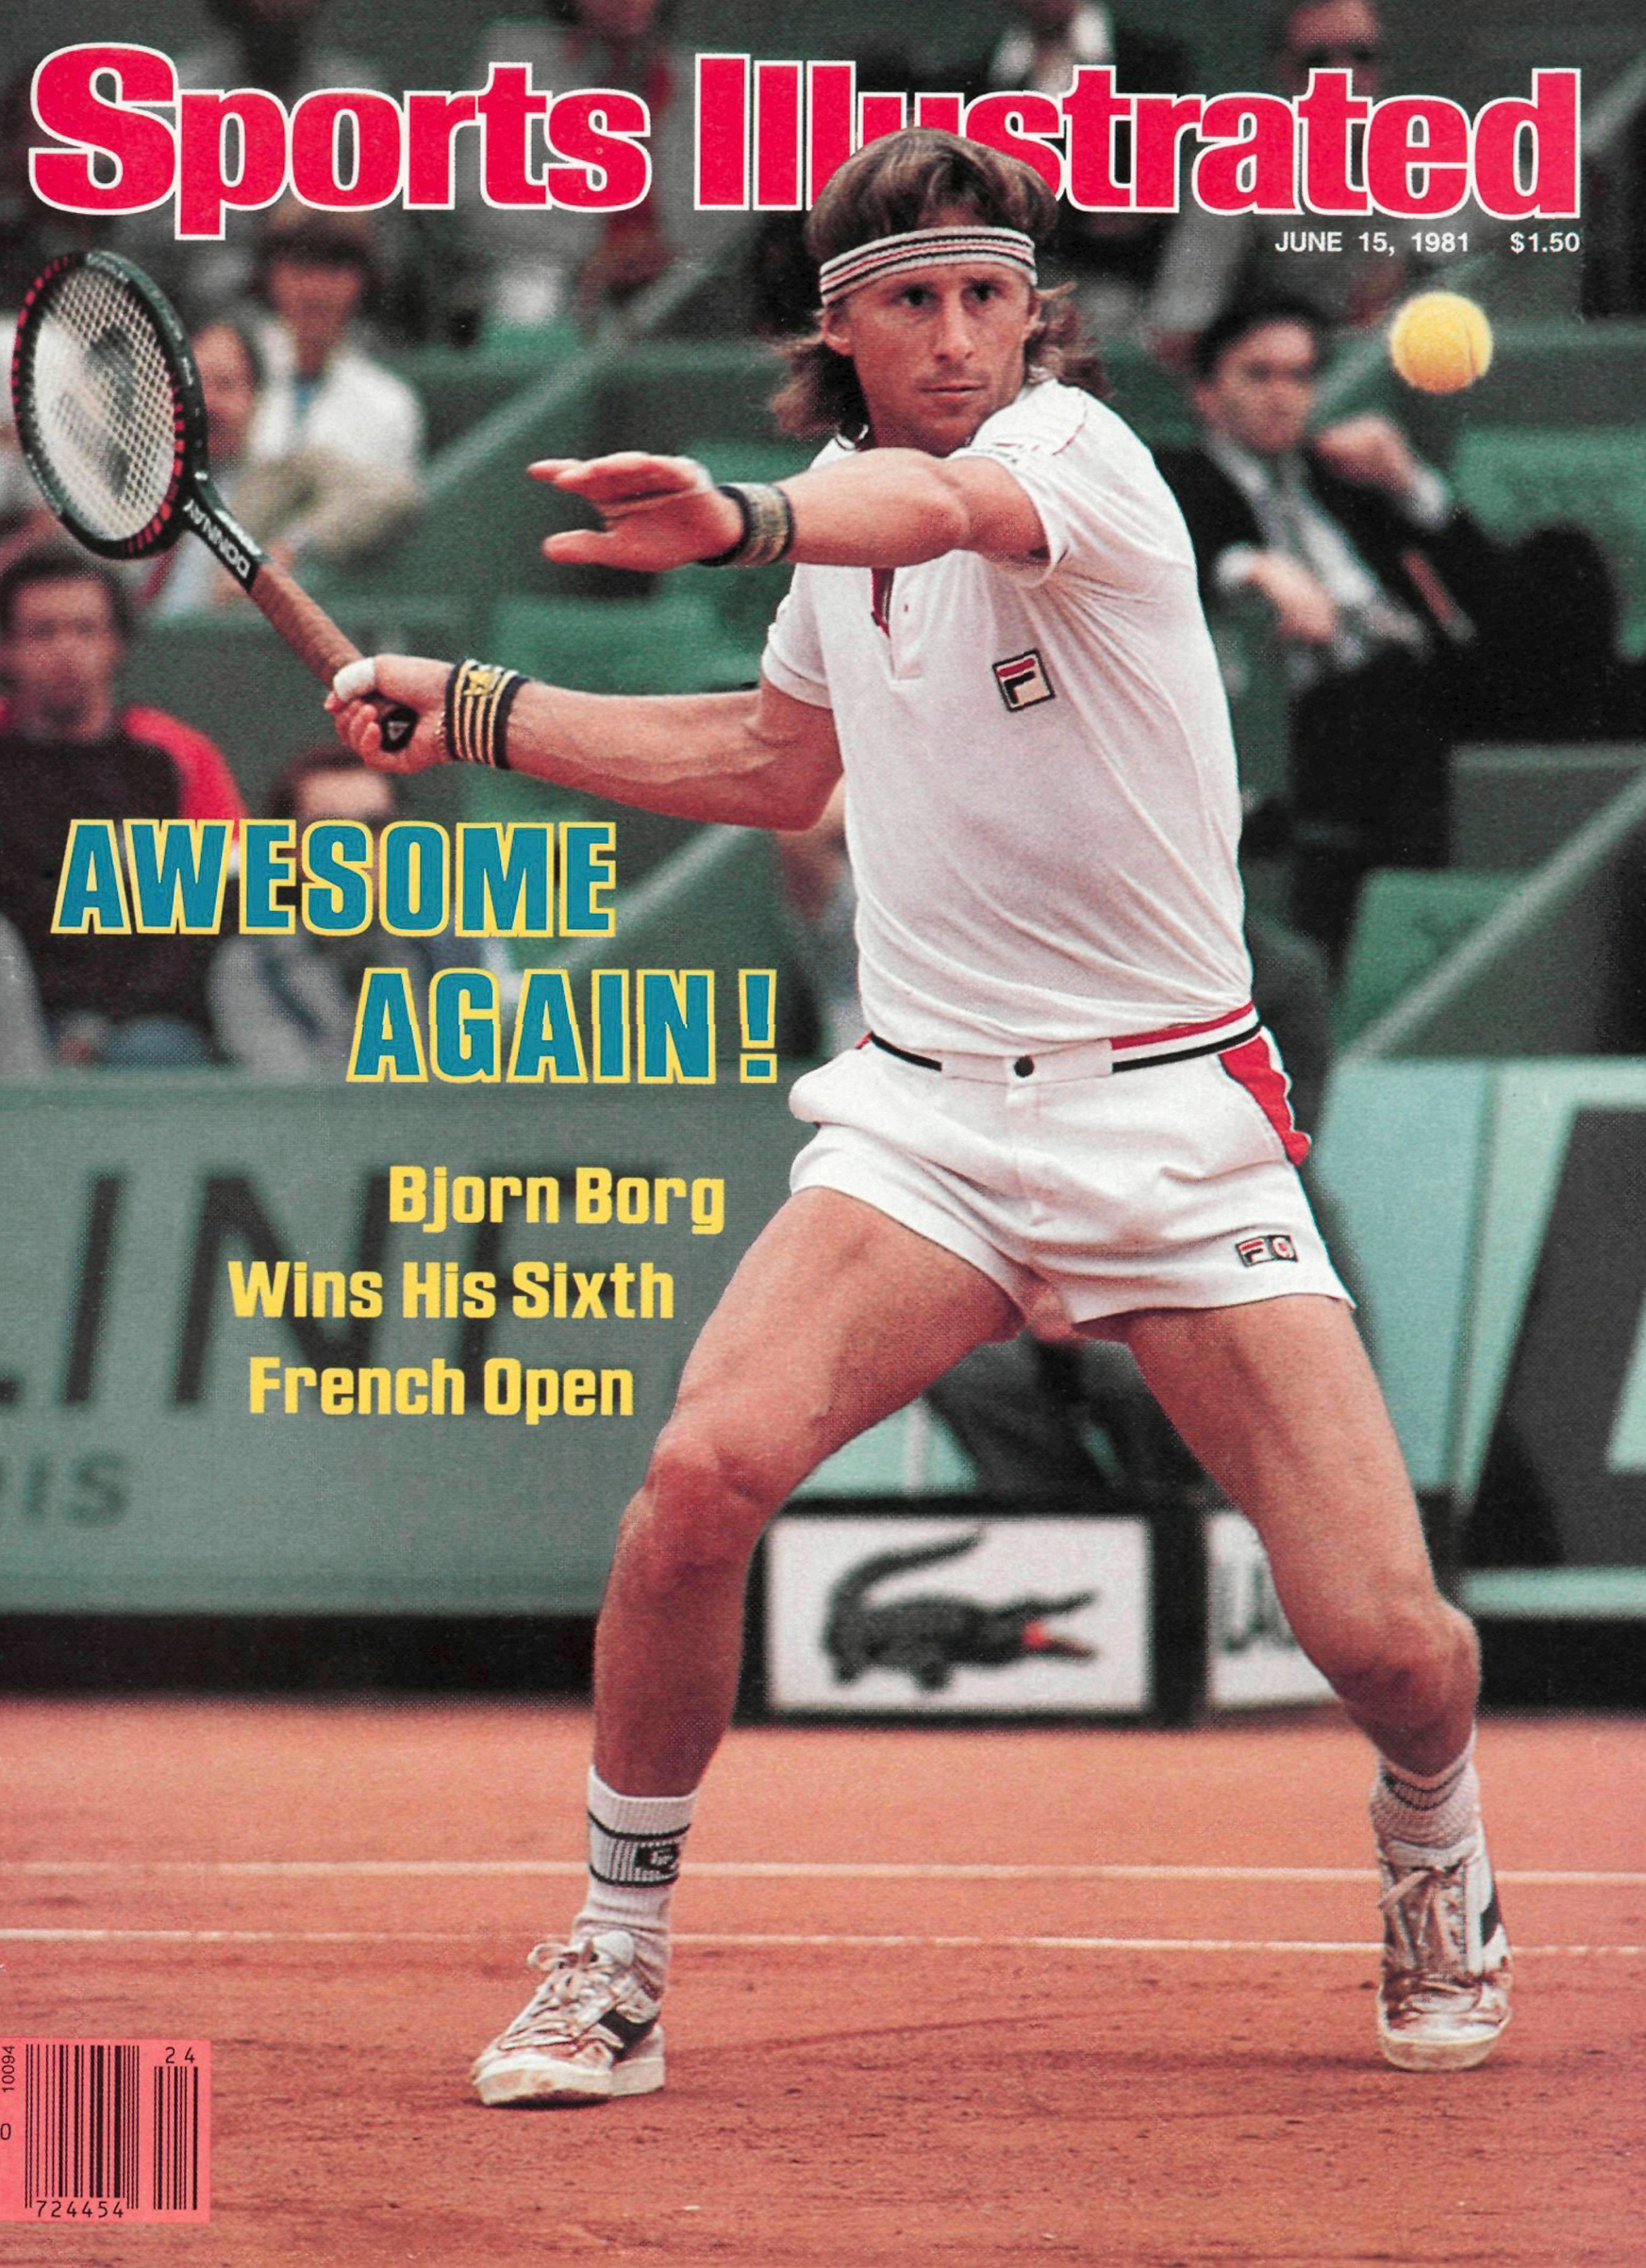 June 15, 1981 Sports Illustrated Cover. Sweden Bjorn Borg in action during match at Stade Roland Garros. Paris, France. Photo by Russ Adams.